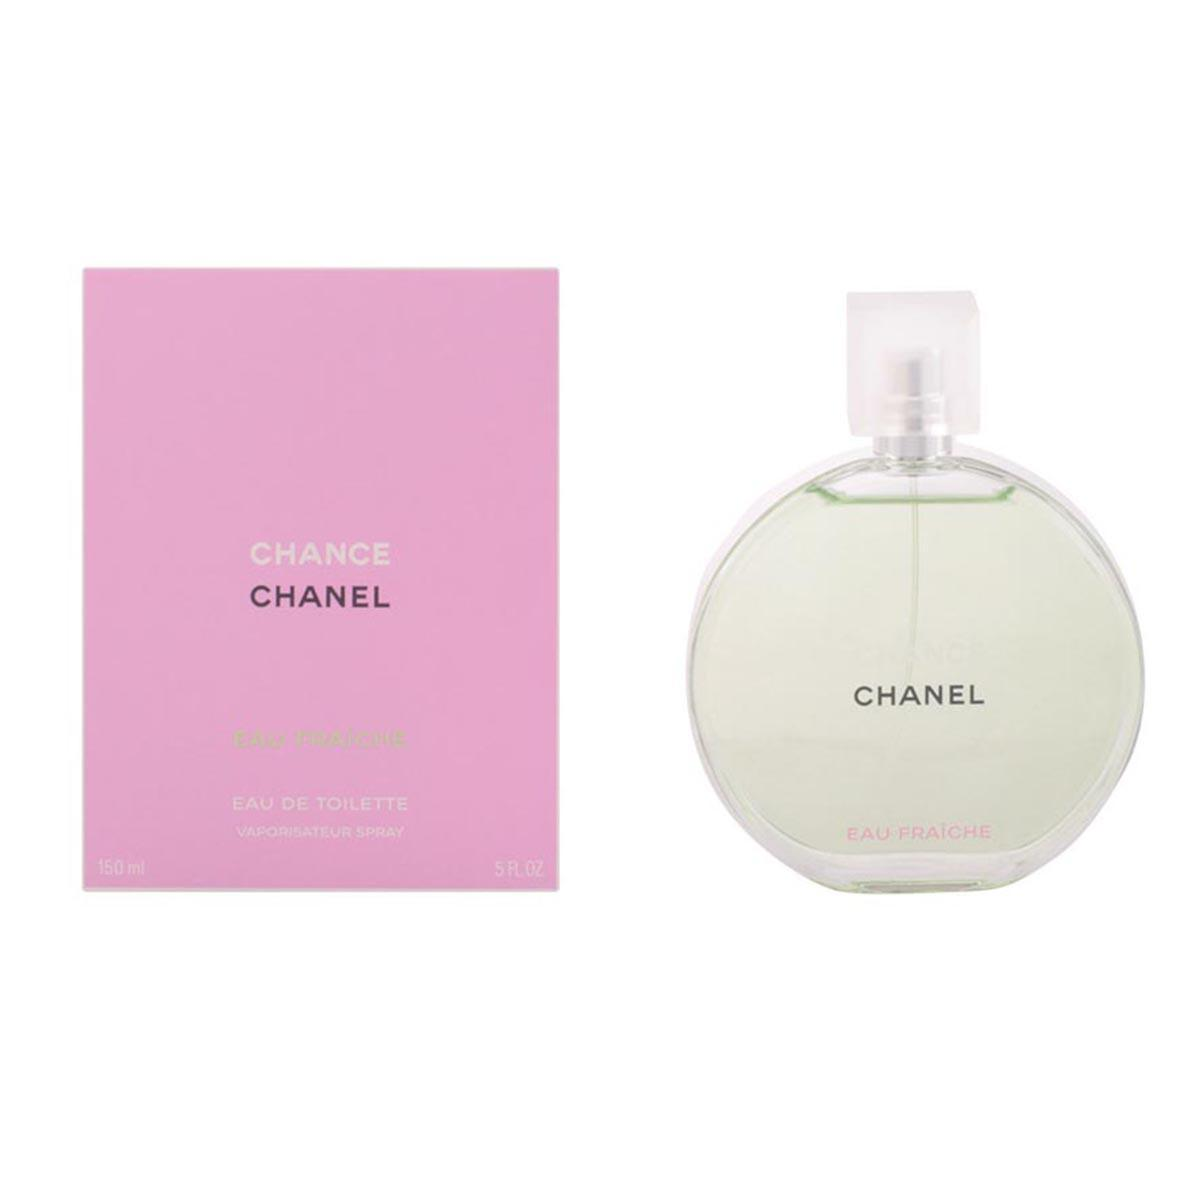 Chanel fragrances Chance Eau Fraiche Eau De Toilette 150ml